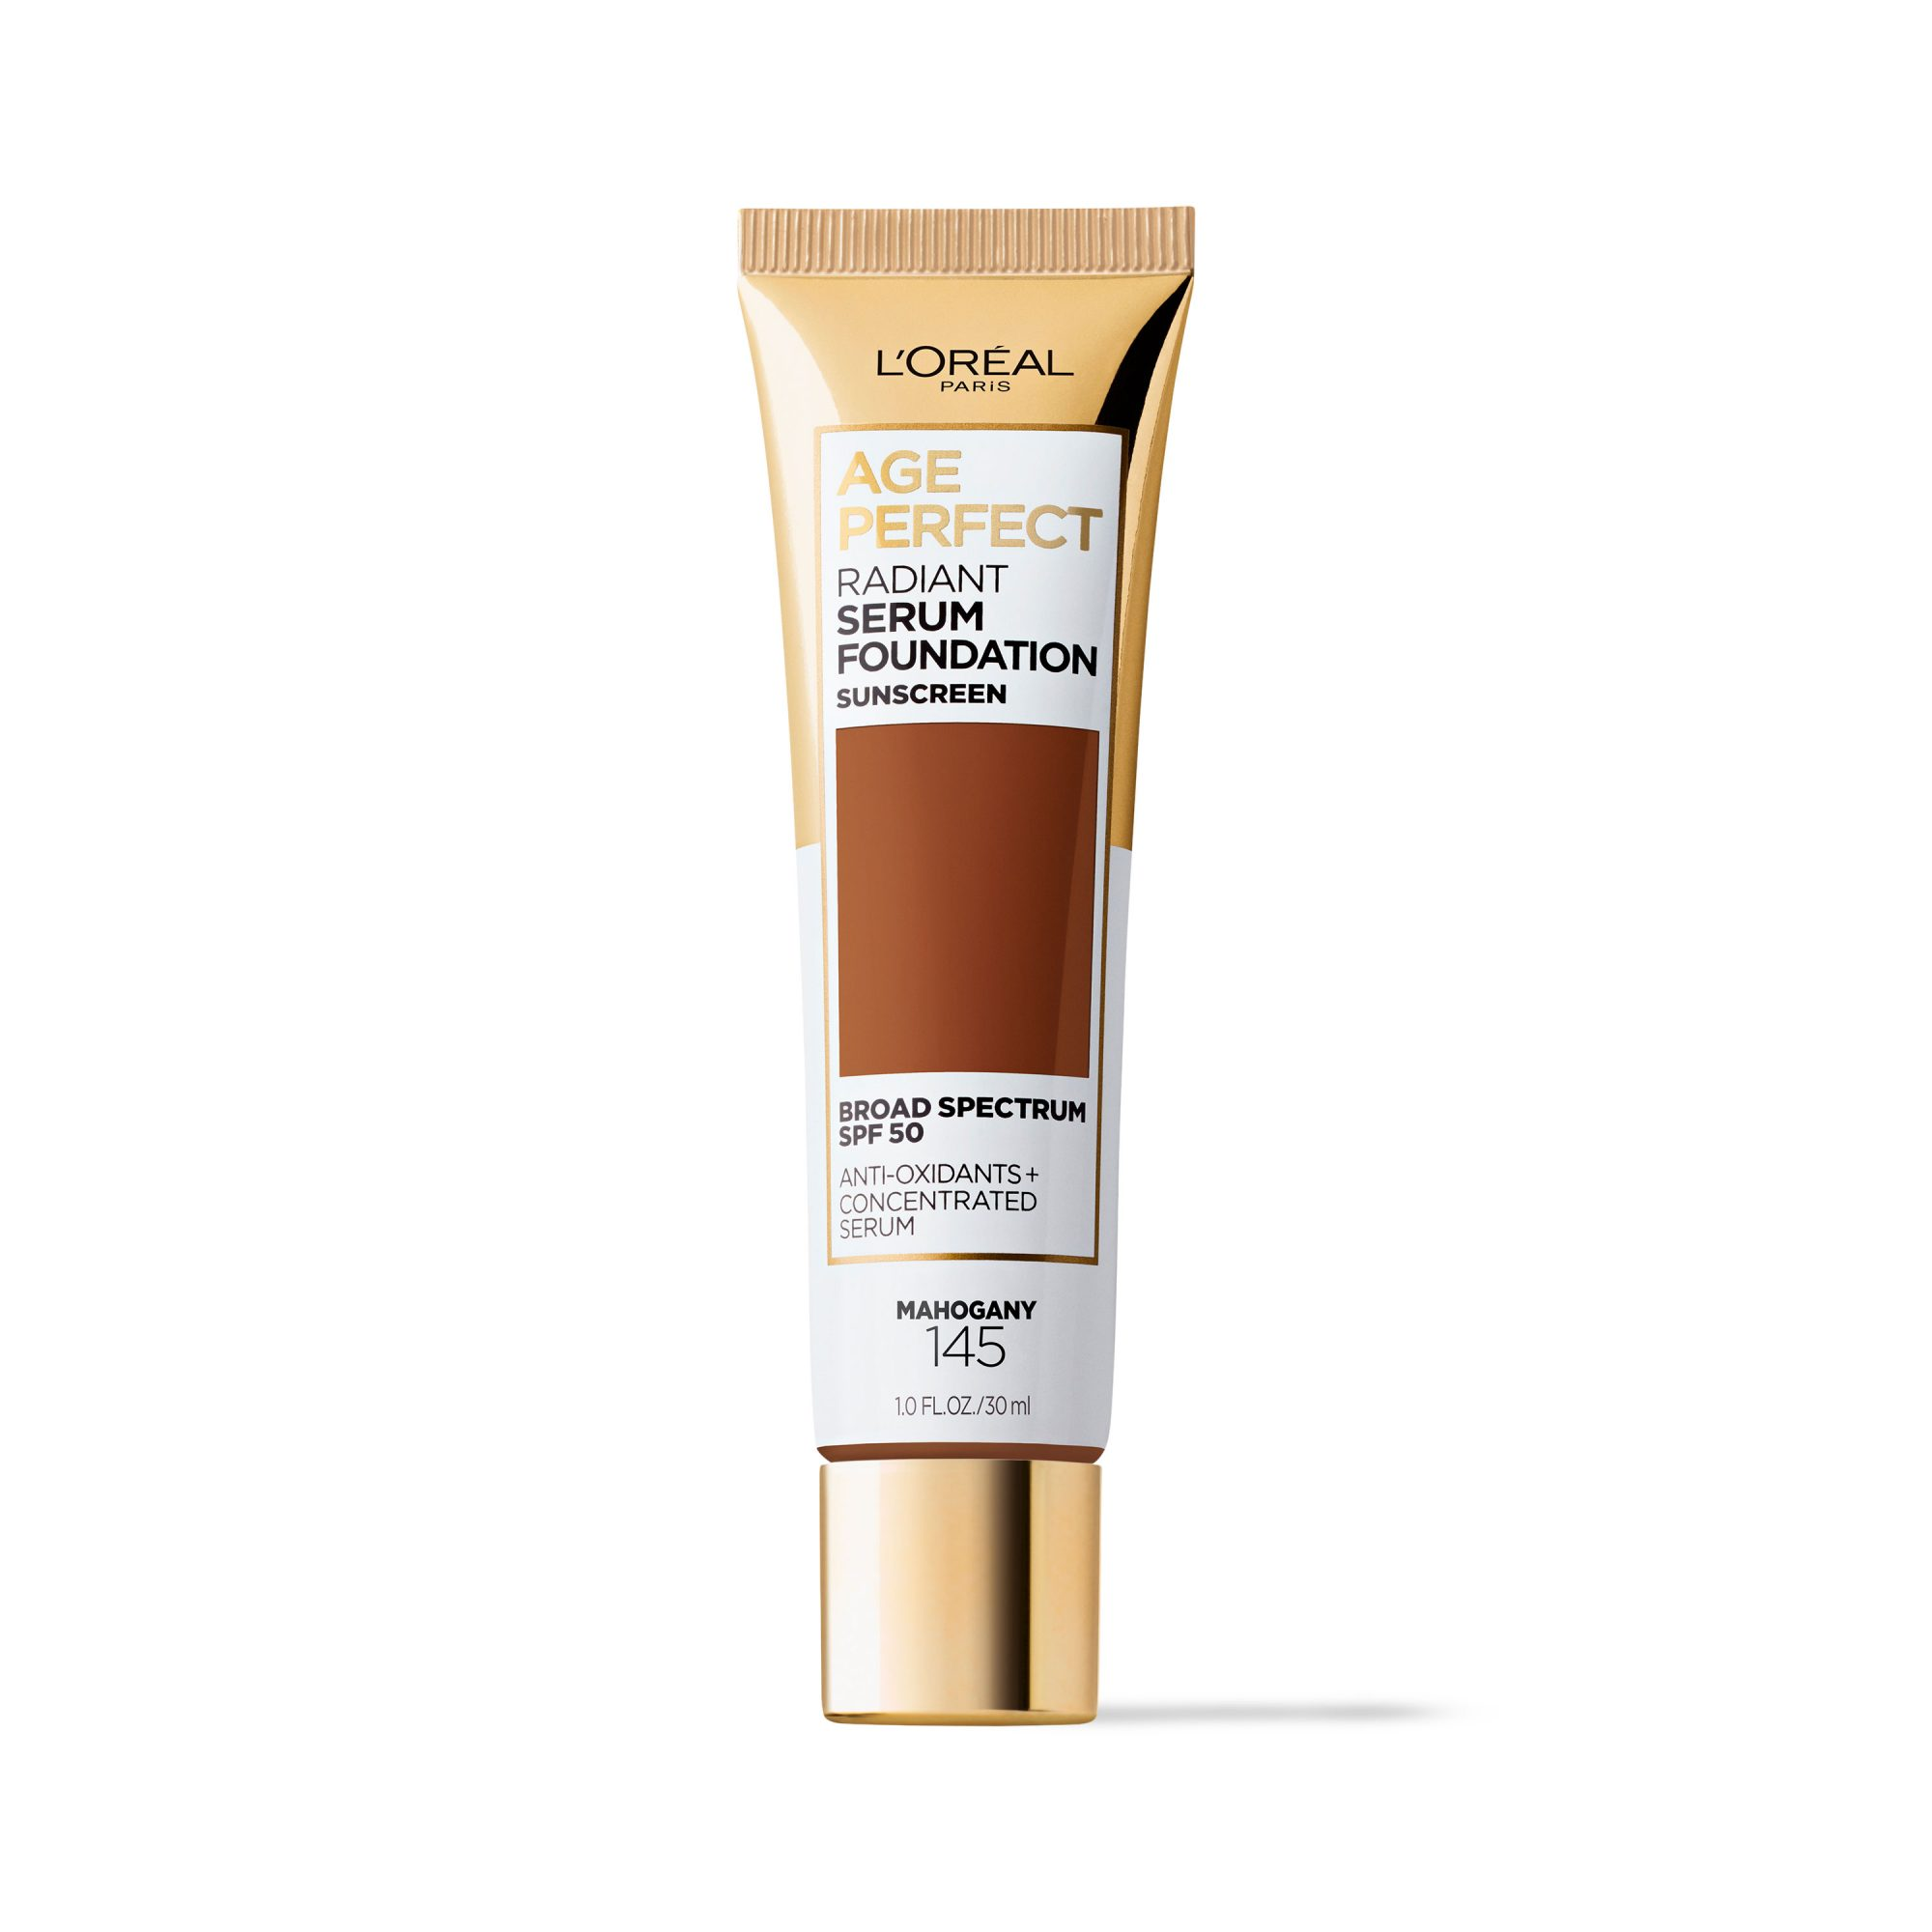 L'Oréal Paris Age Perfect Radiant Serum Foundation